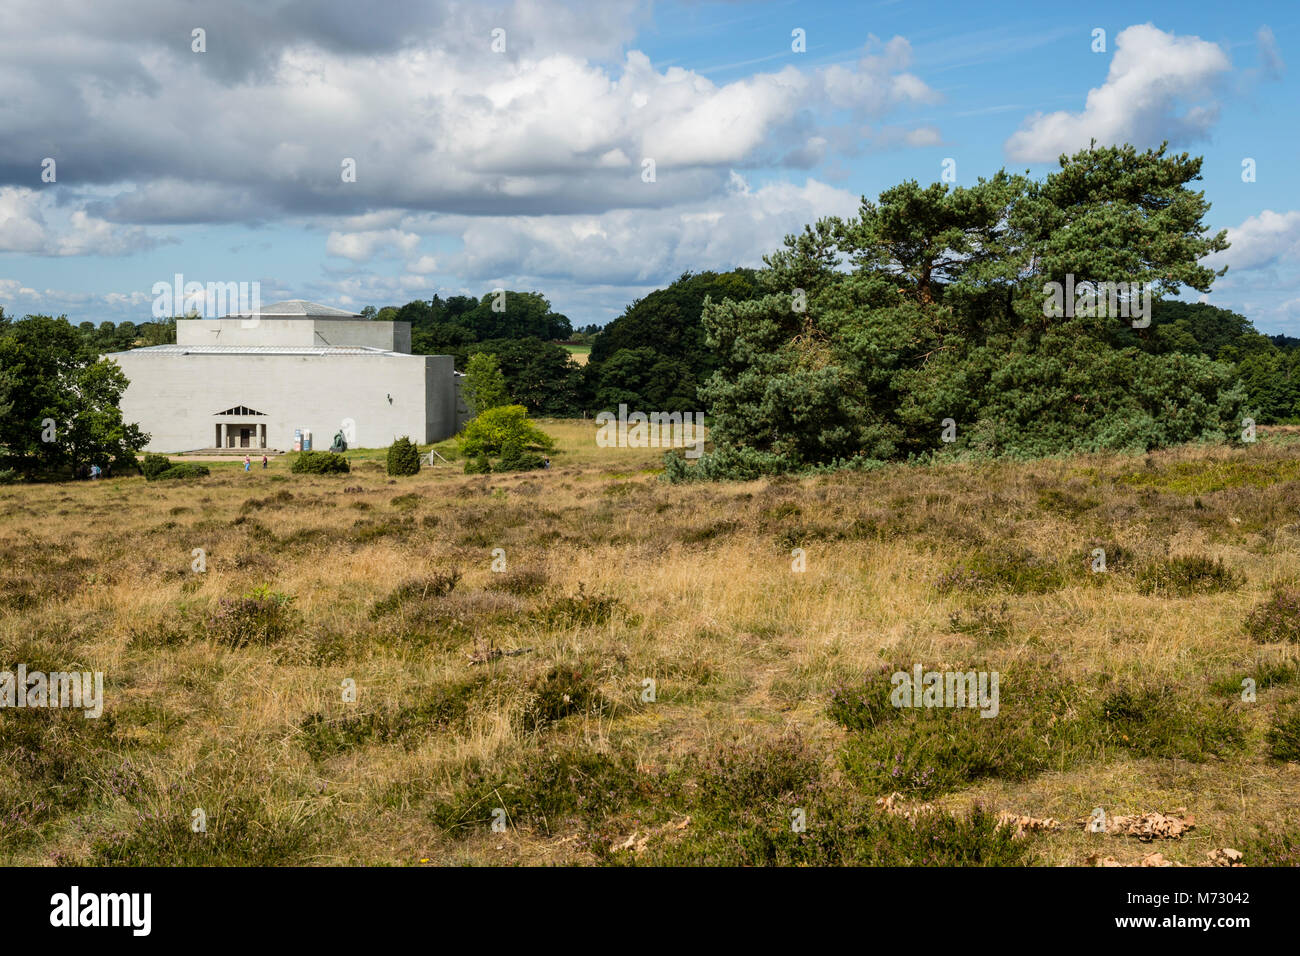 Rudolph Tegners Museum & statue park - Stock Image